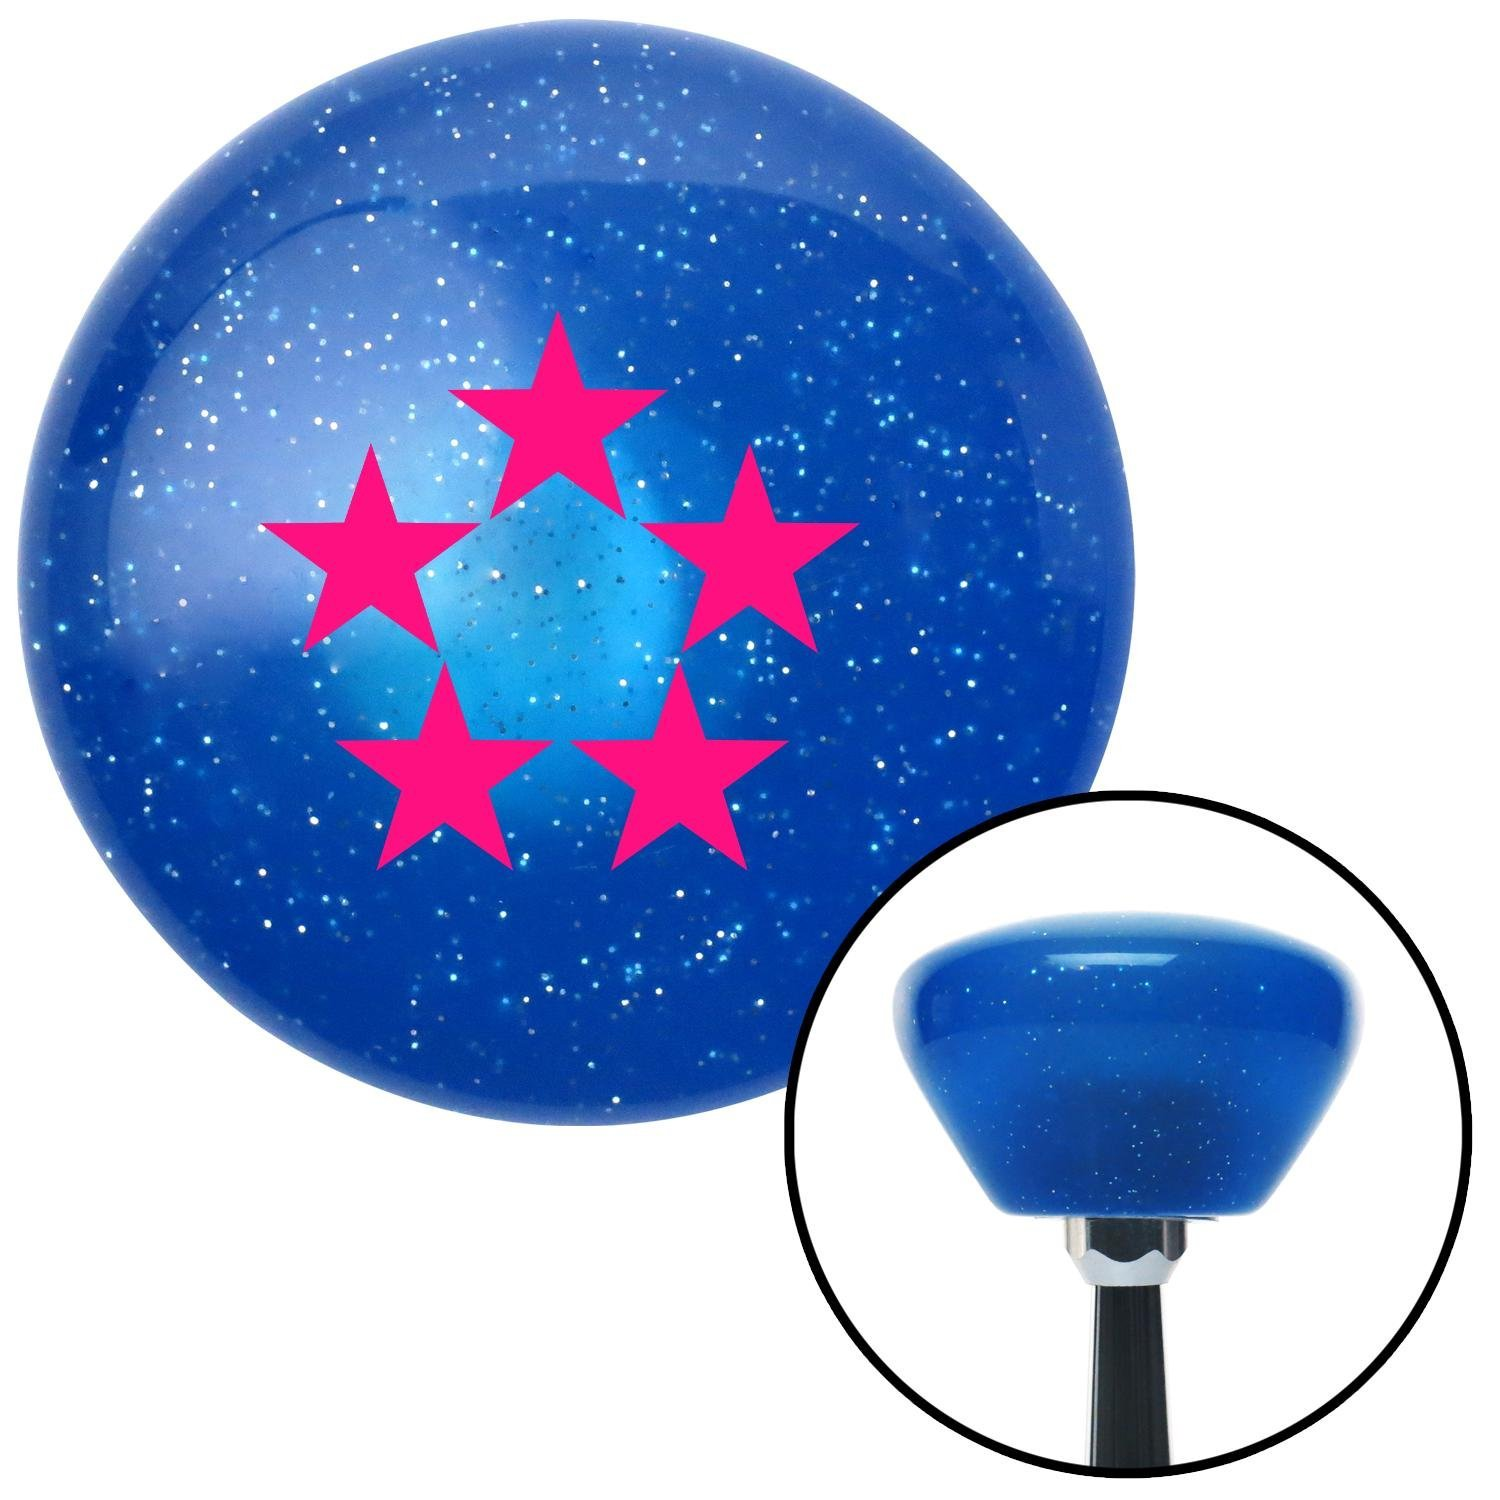 Pink Fleet Admiral American Shifter 190222 Blue Retro Metal Flake Shift Knob with M16 x 1.5 Insert